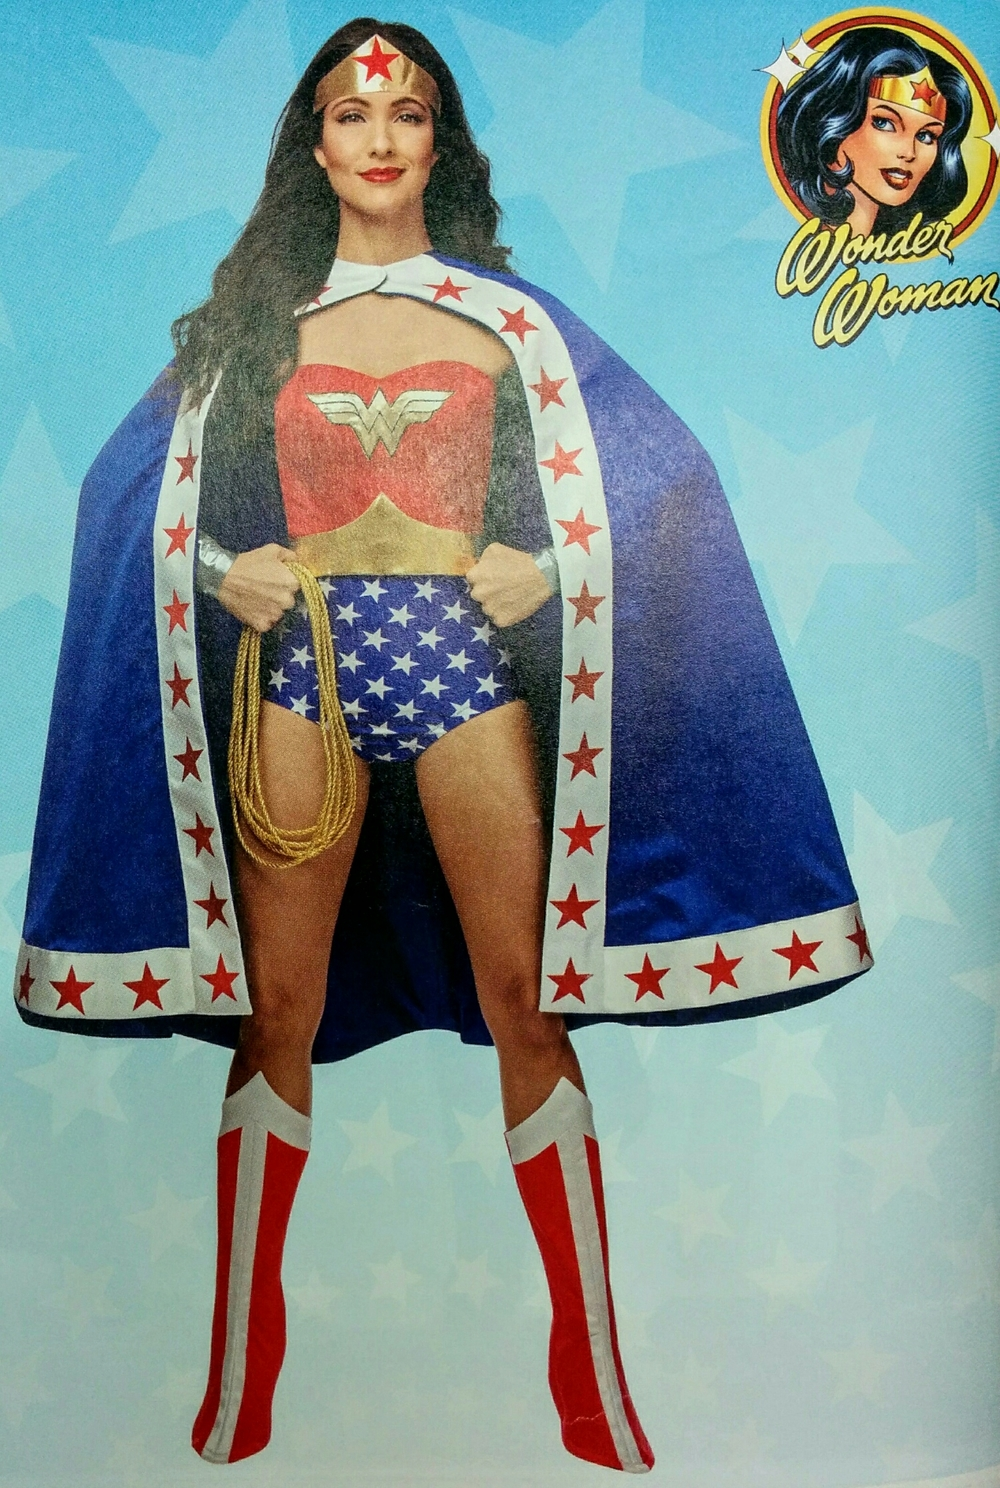 Wonderful Wonder Woman image from Simplicity.com